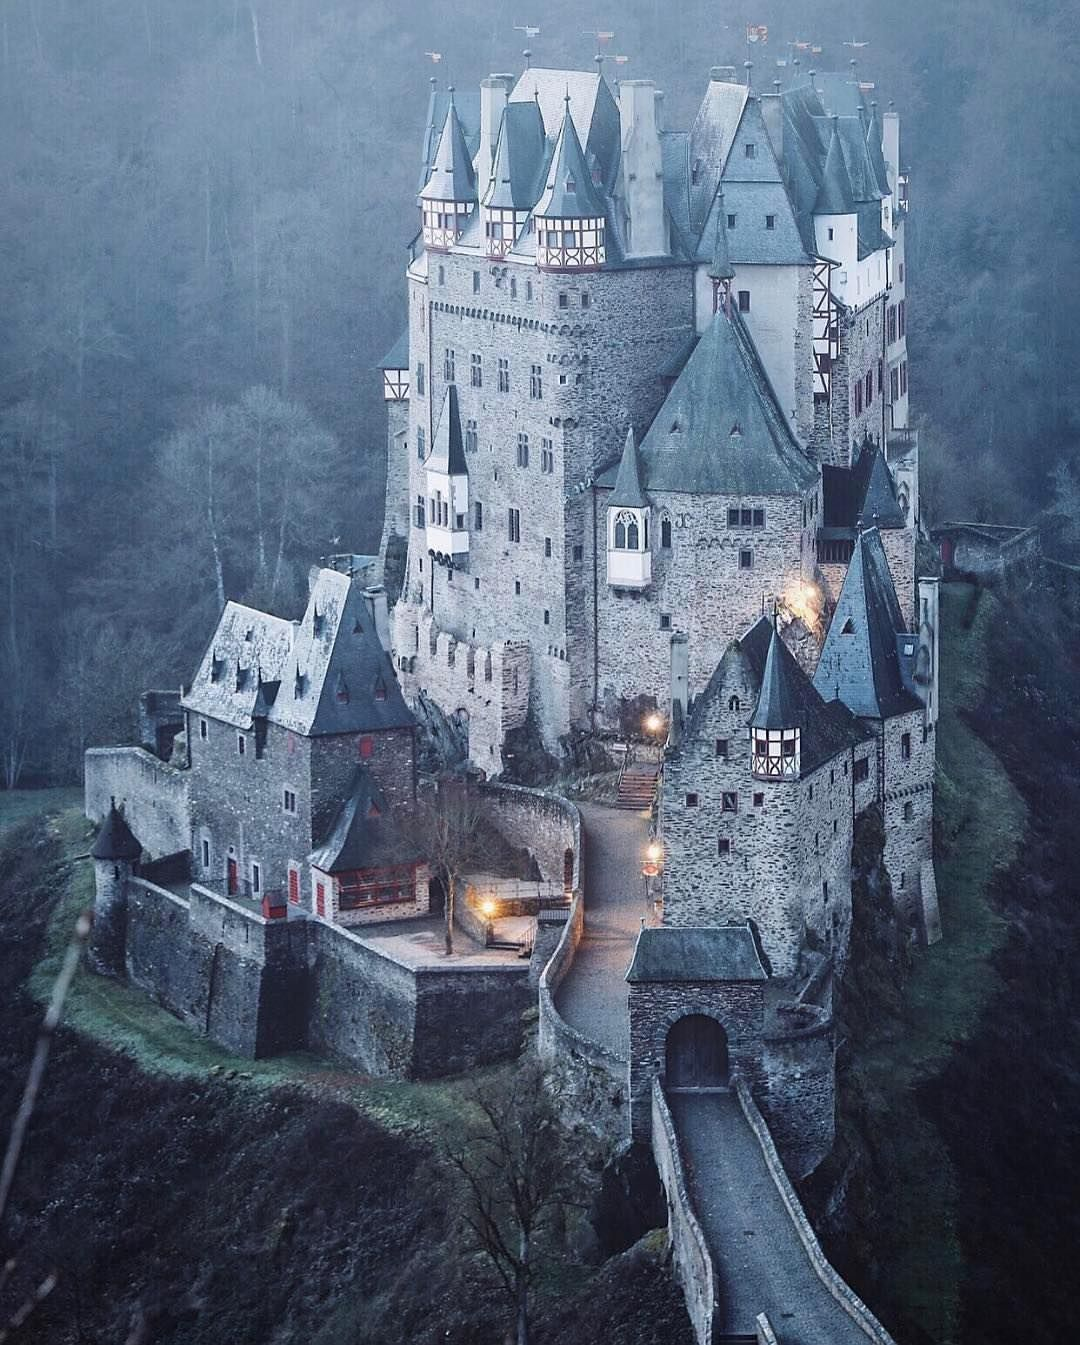 Travel Insurance Options For Traveling Abroad In 2020 Germany Castles Beautiful Castles Castle